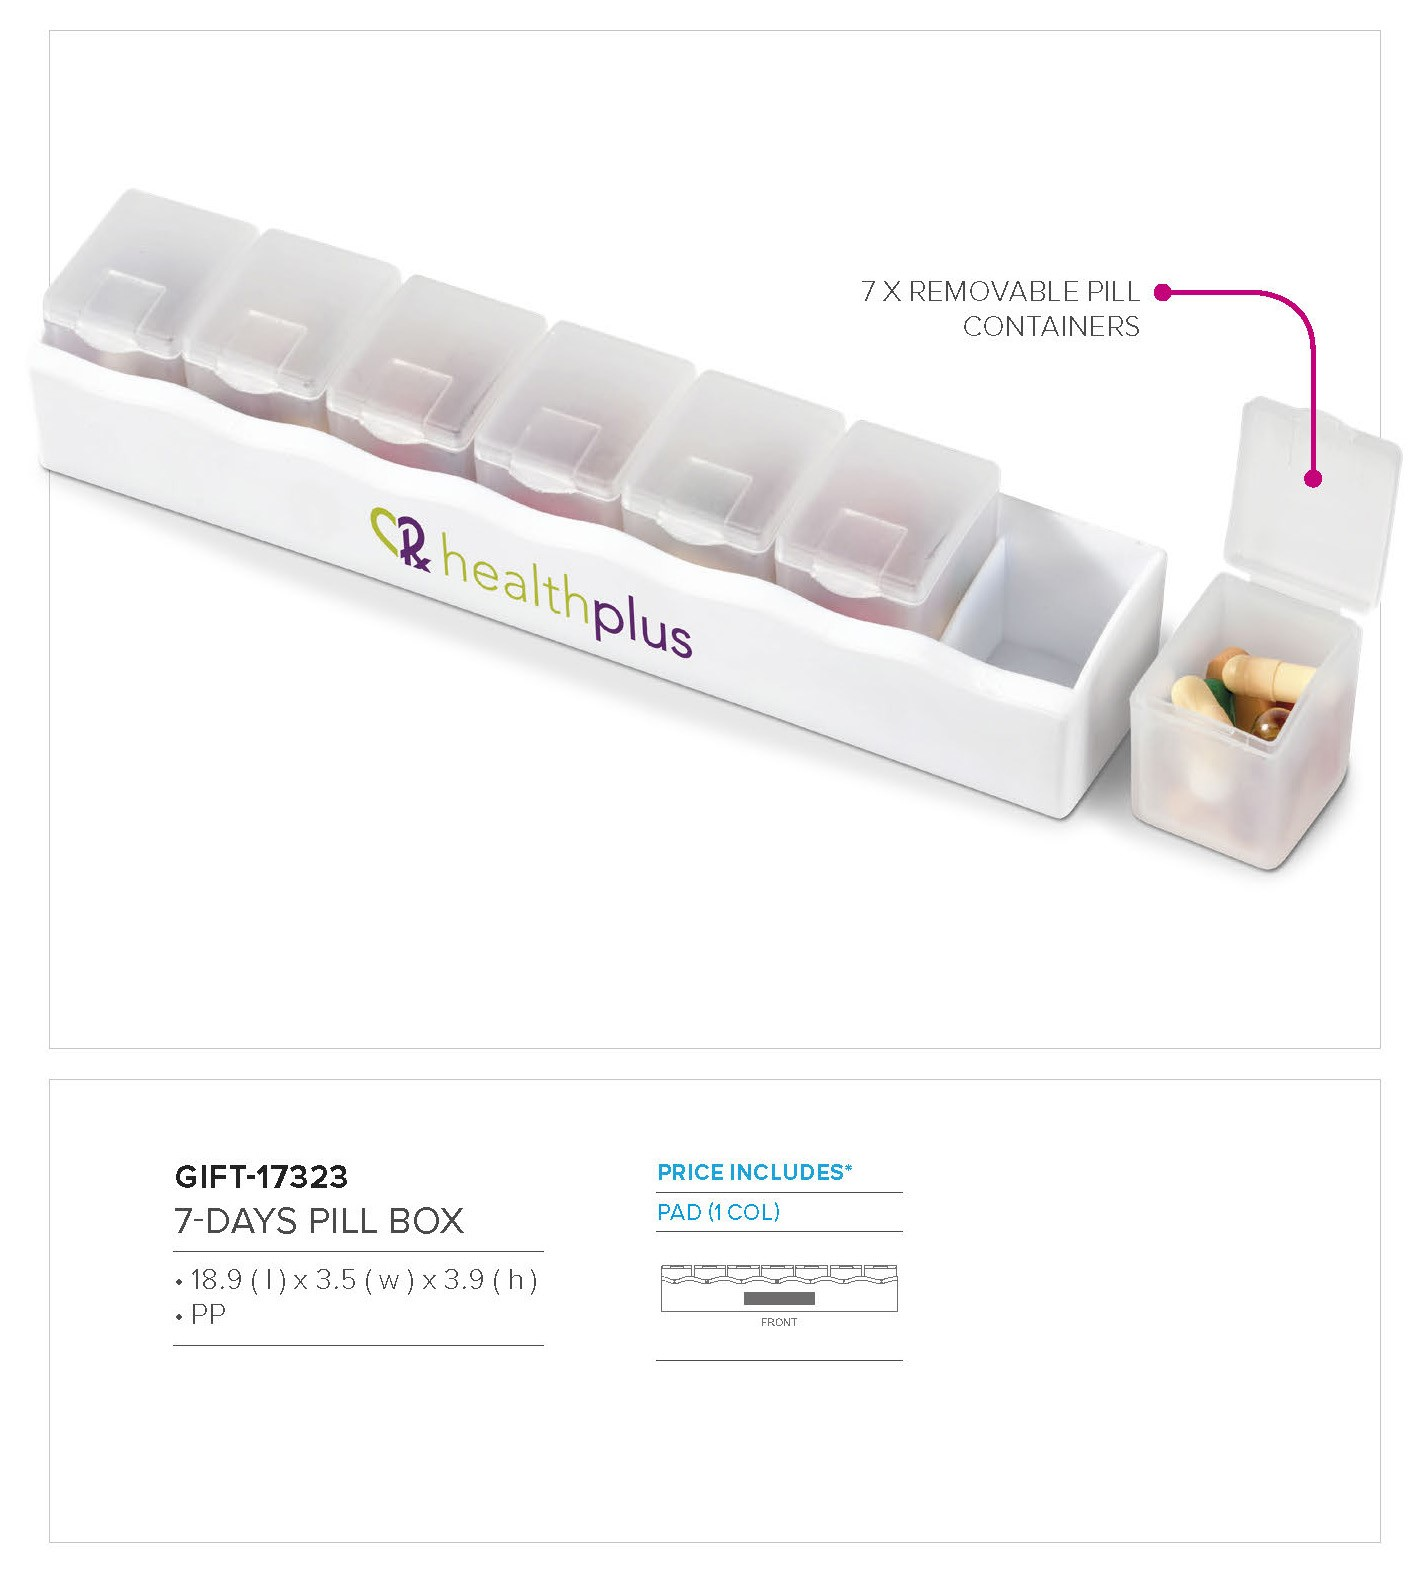 Product: 7-Days Pill Box